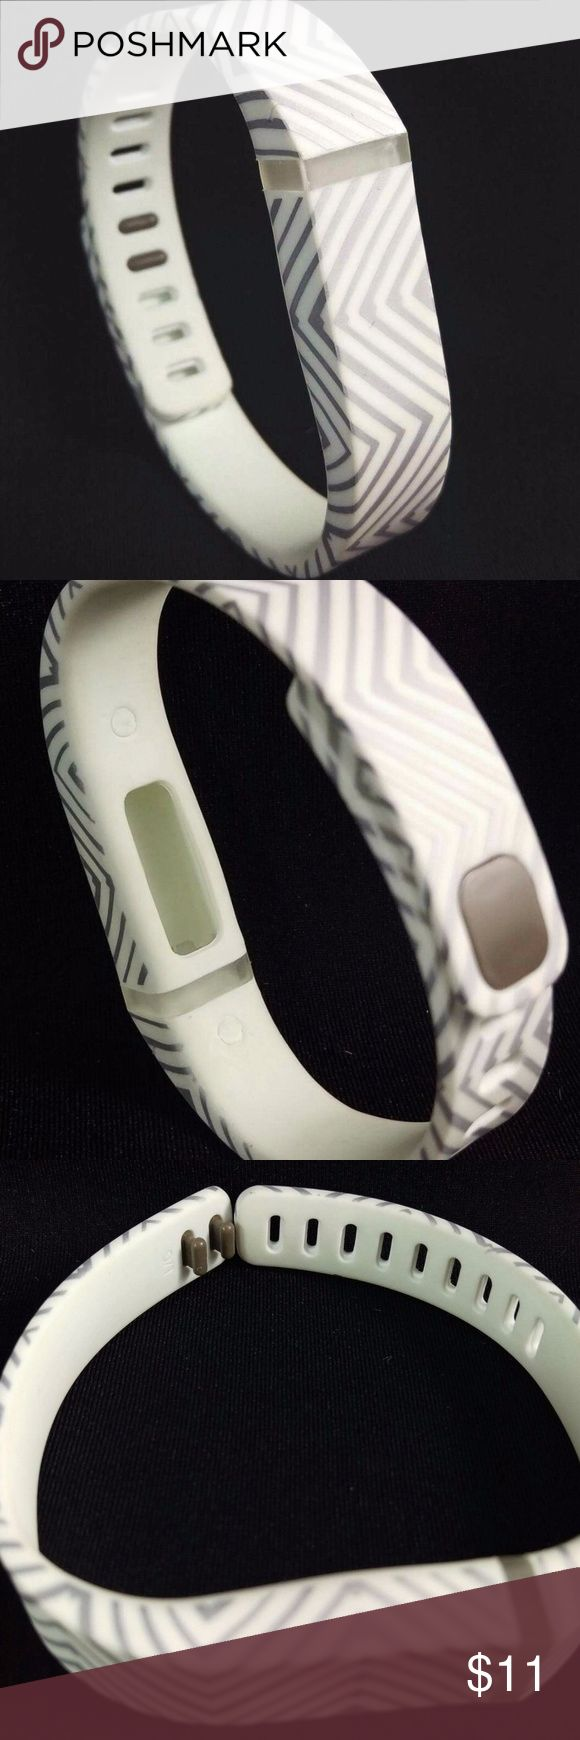 Fitbit Flex Band Chevron Silver White Patterned Smart Buddies brand replacement band for Fitbit Flex.  This listing is for the band only.  Adorable grey and white chevron design. 1 Replacement fashion band for use with Fitbit Flex. 1 clasp for secure closure. Add color and style to your Fitbit Flex Activity Tracker. Made of high-quality TPE material.  BLT1 Smart Buddies Accessories